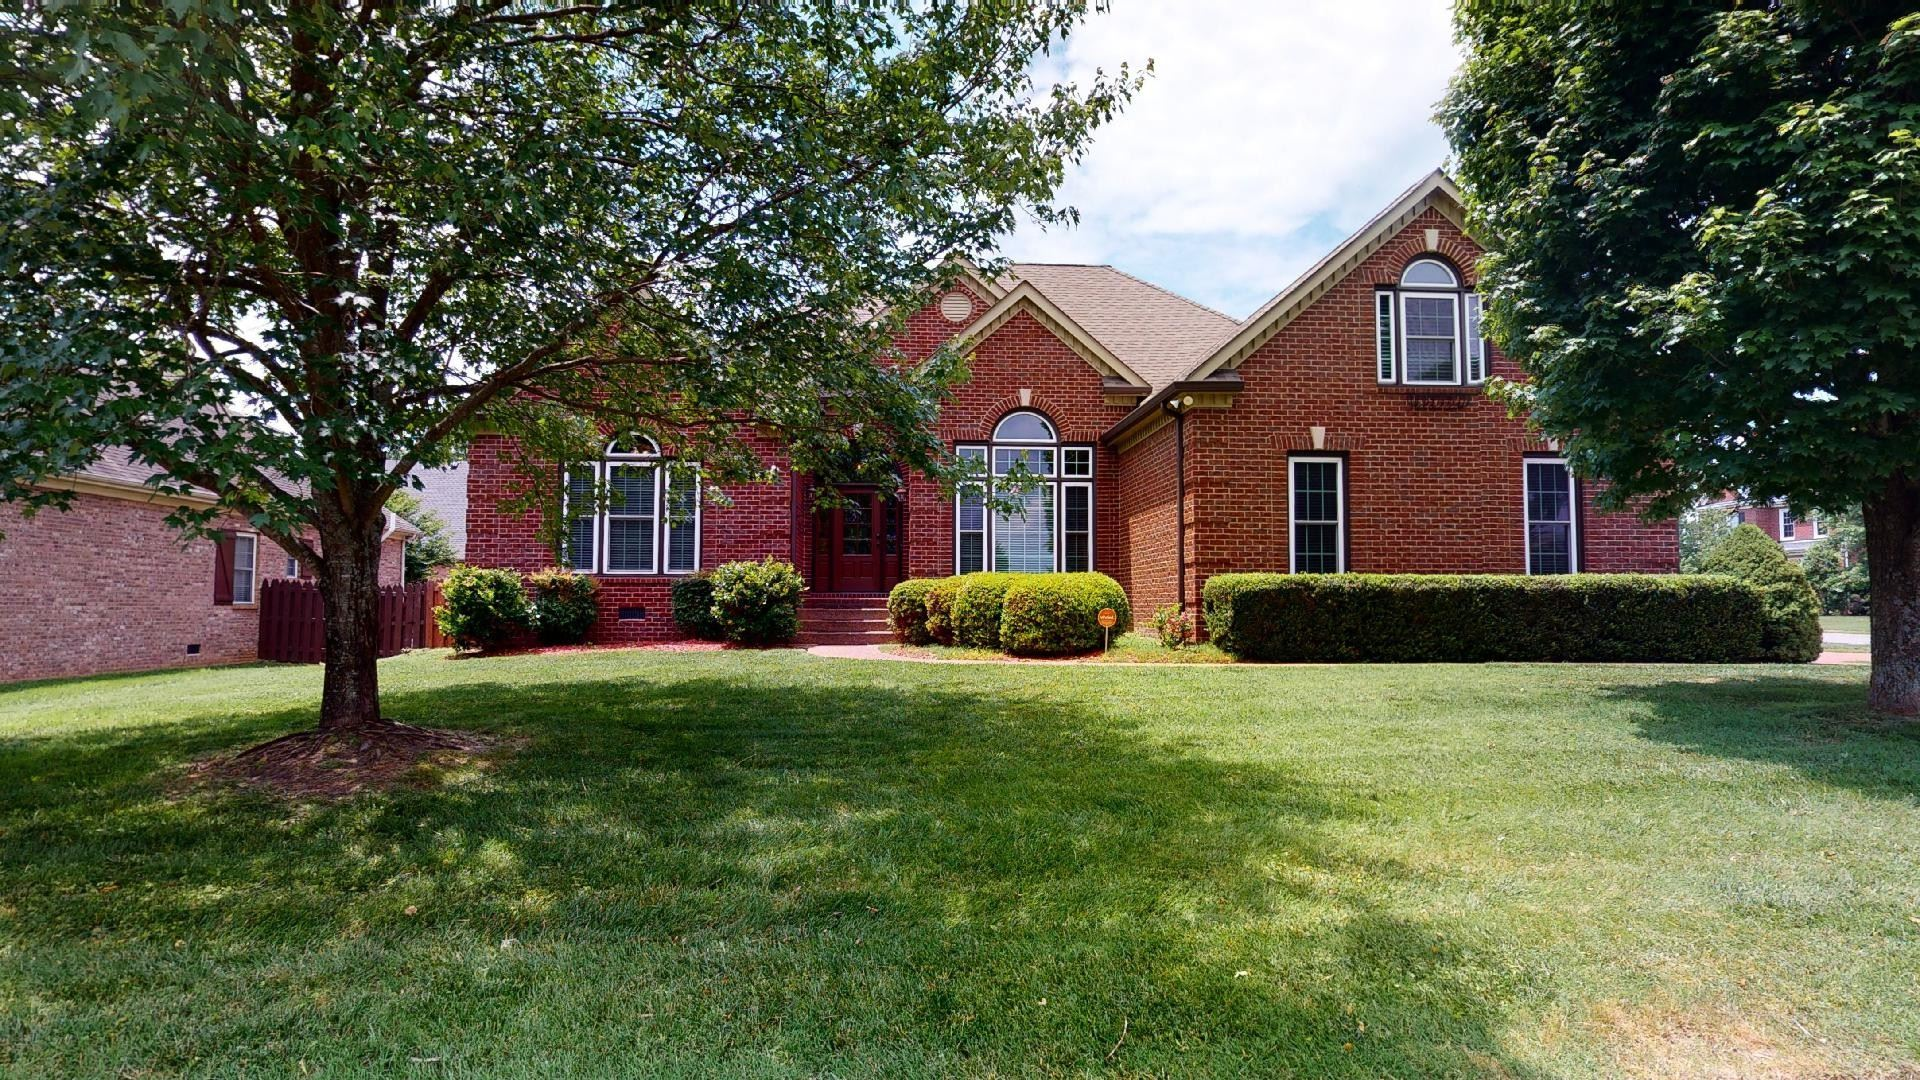 Photo of 3033 Havasu Dr, Spring Hill, TN 37174 (MLS # 2155832)